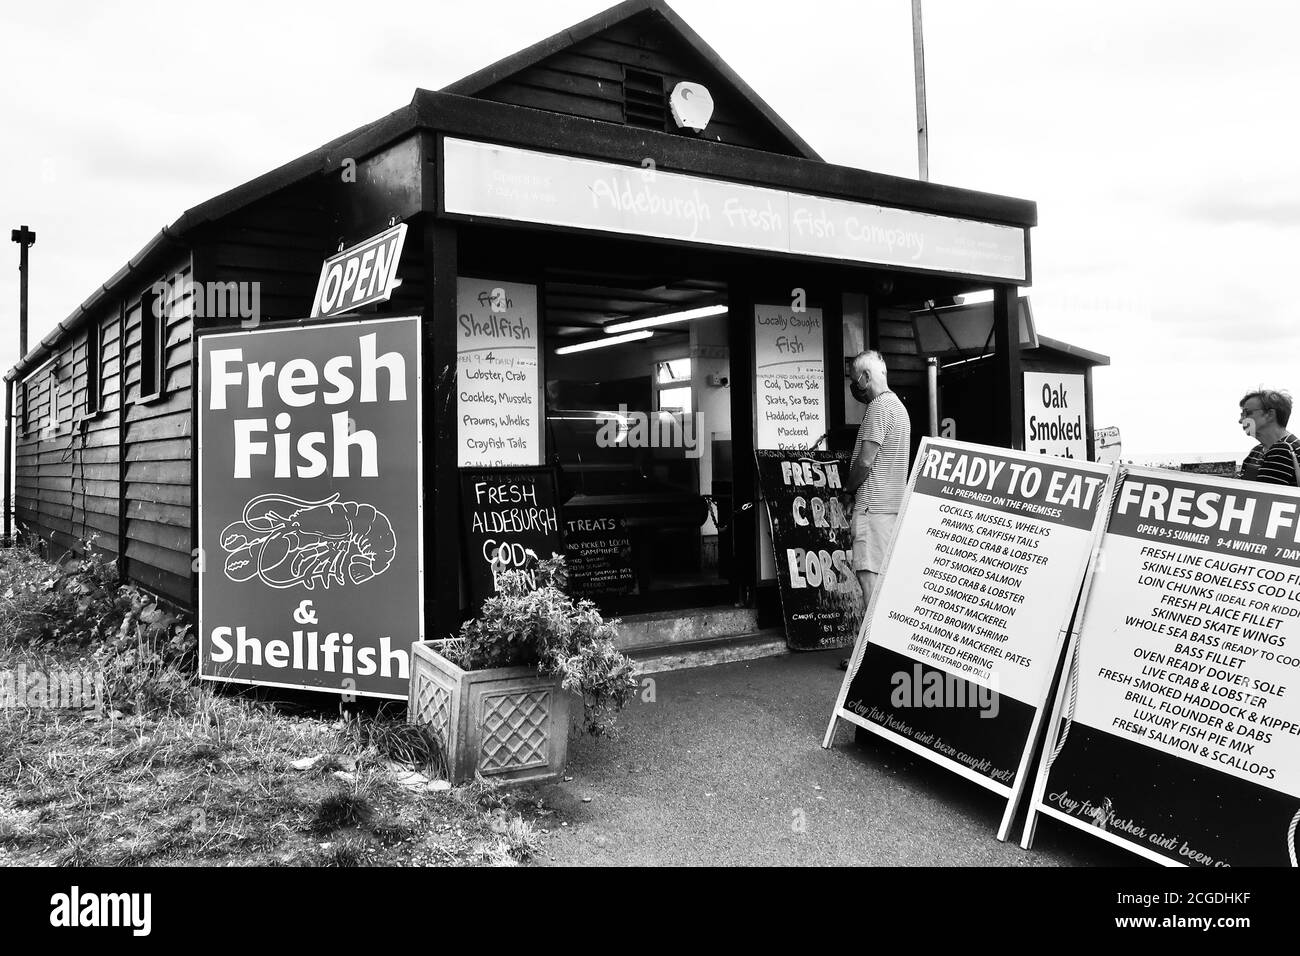 Aldeburgh, Suffolk, UK - 9 September 2020: Sunny autumn day on the East Anglia coast. Fresh fish seller shed on the beach. Stock Photo